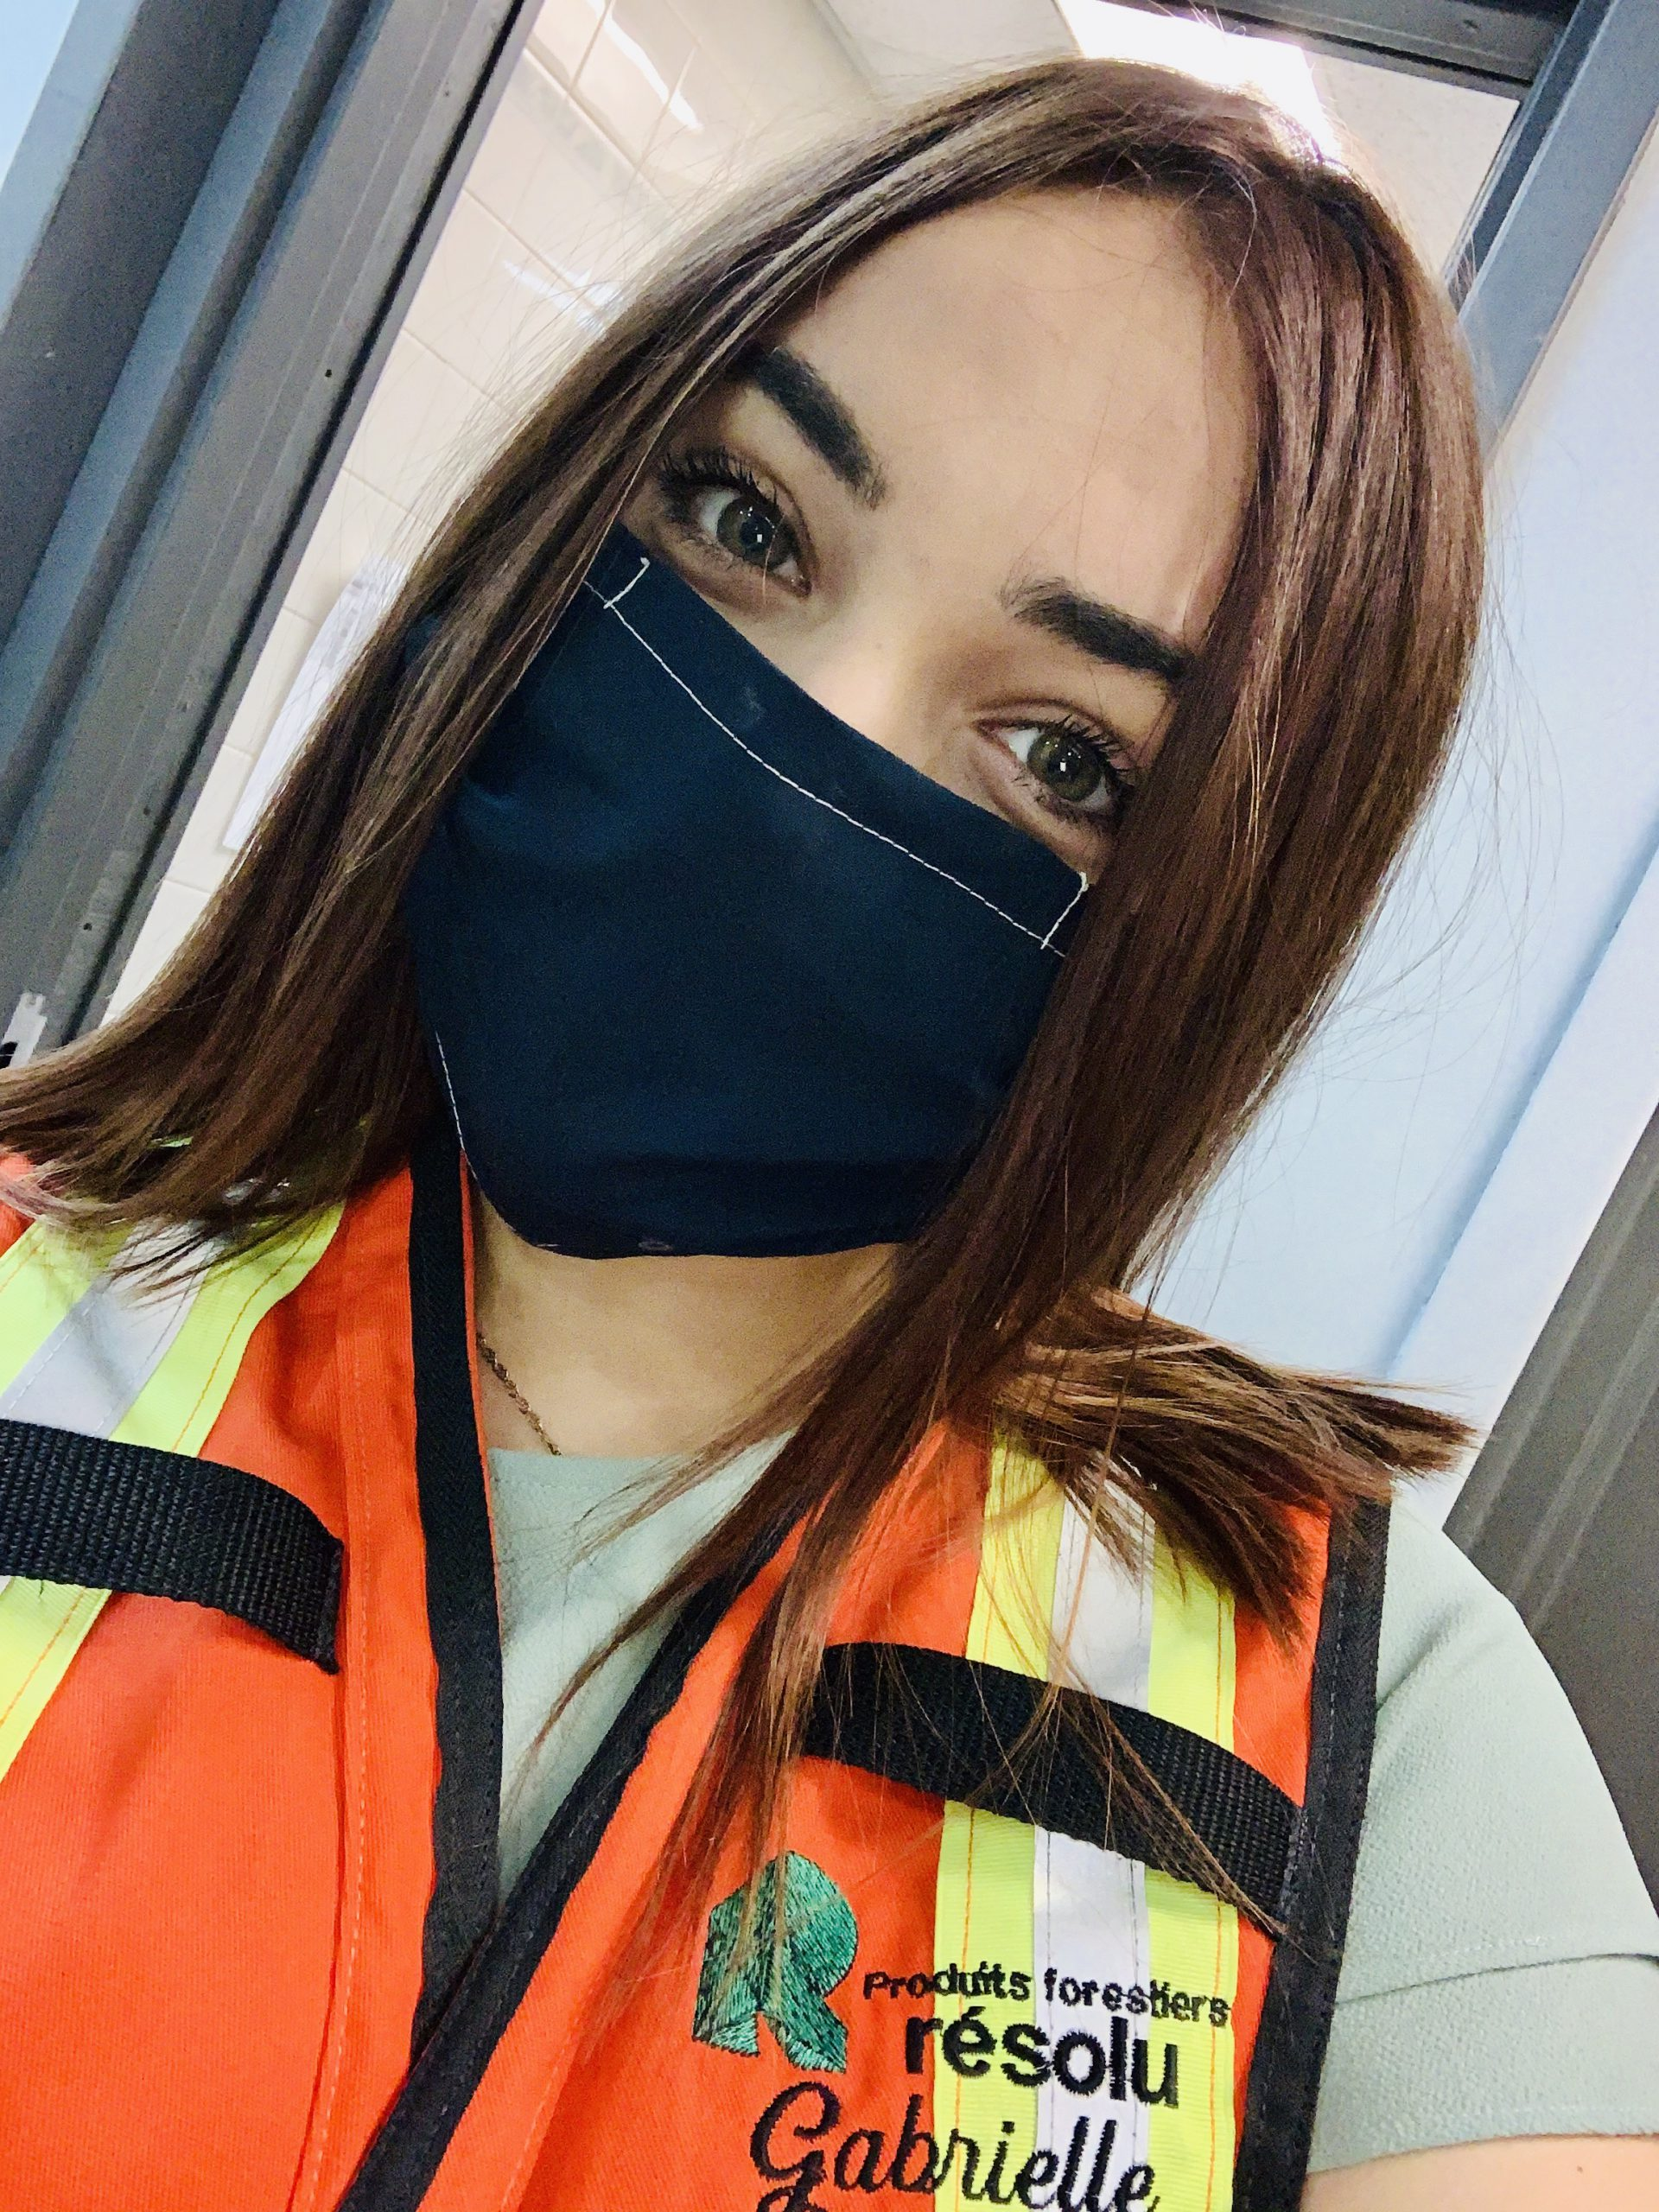 Gabrielle wearing her PPE during a shift.